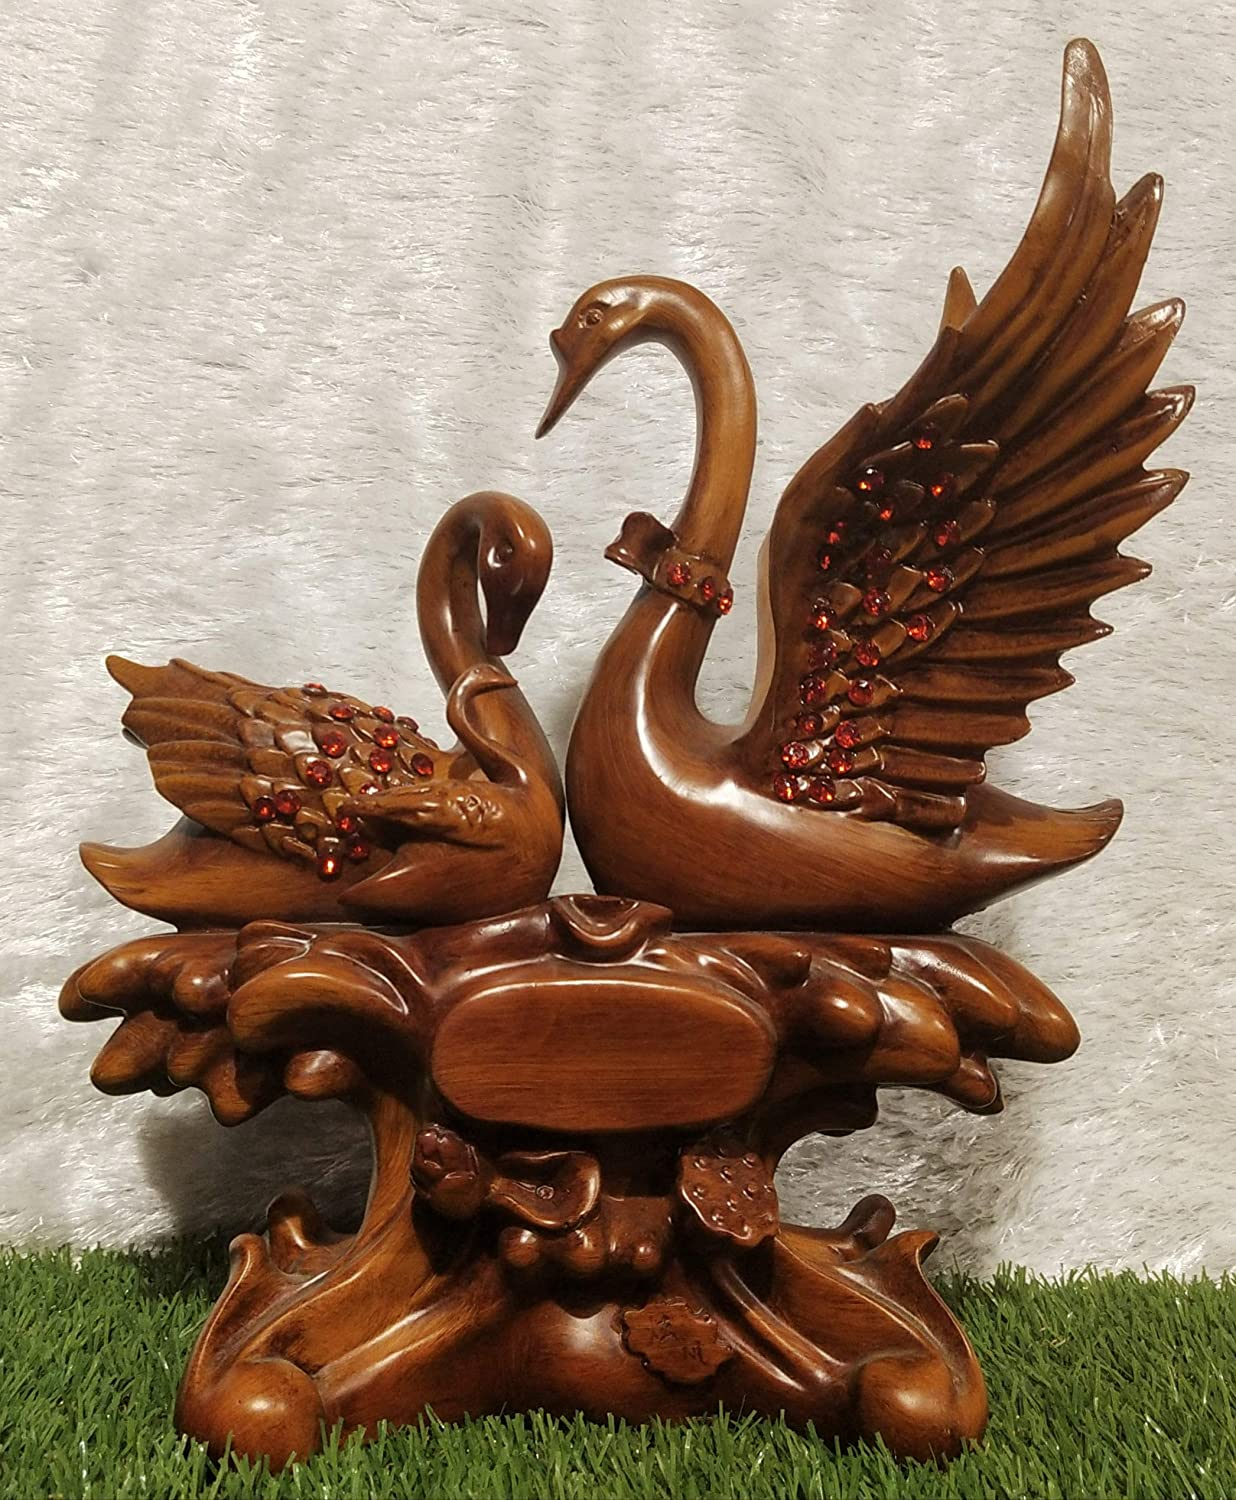 Buy The Uniques A Fusion Gift Gallery Love Birds Figurine Online At Low Prices In India Amazon In